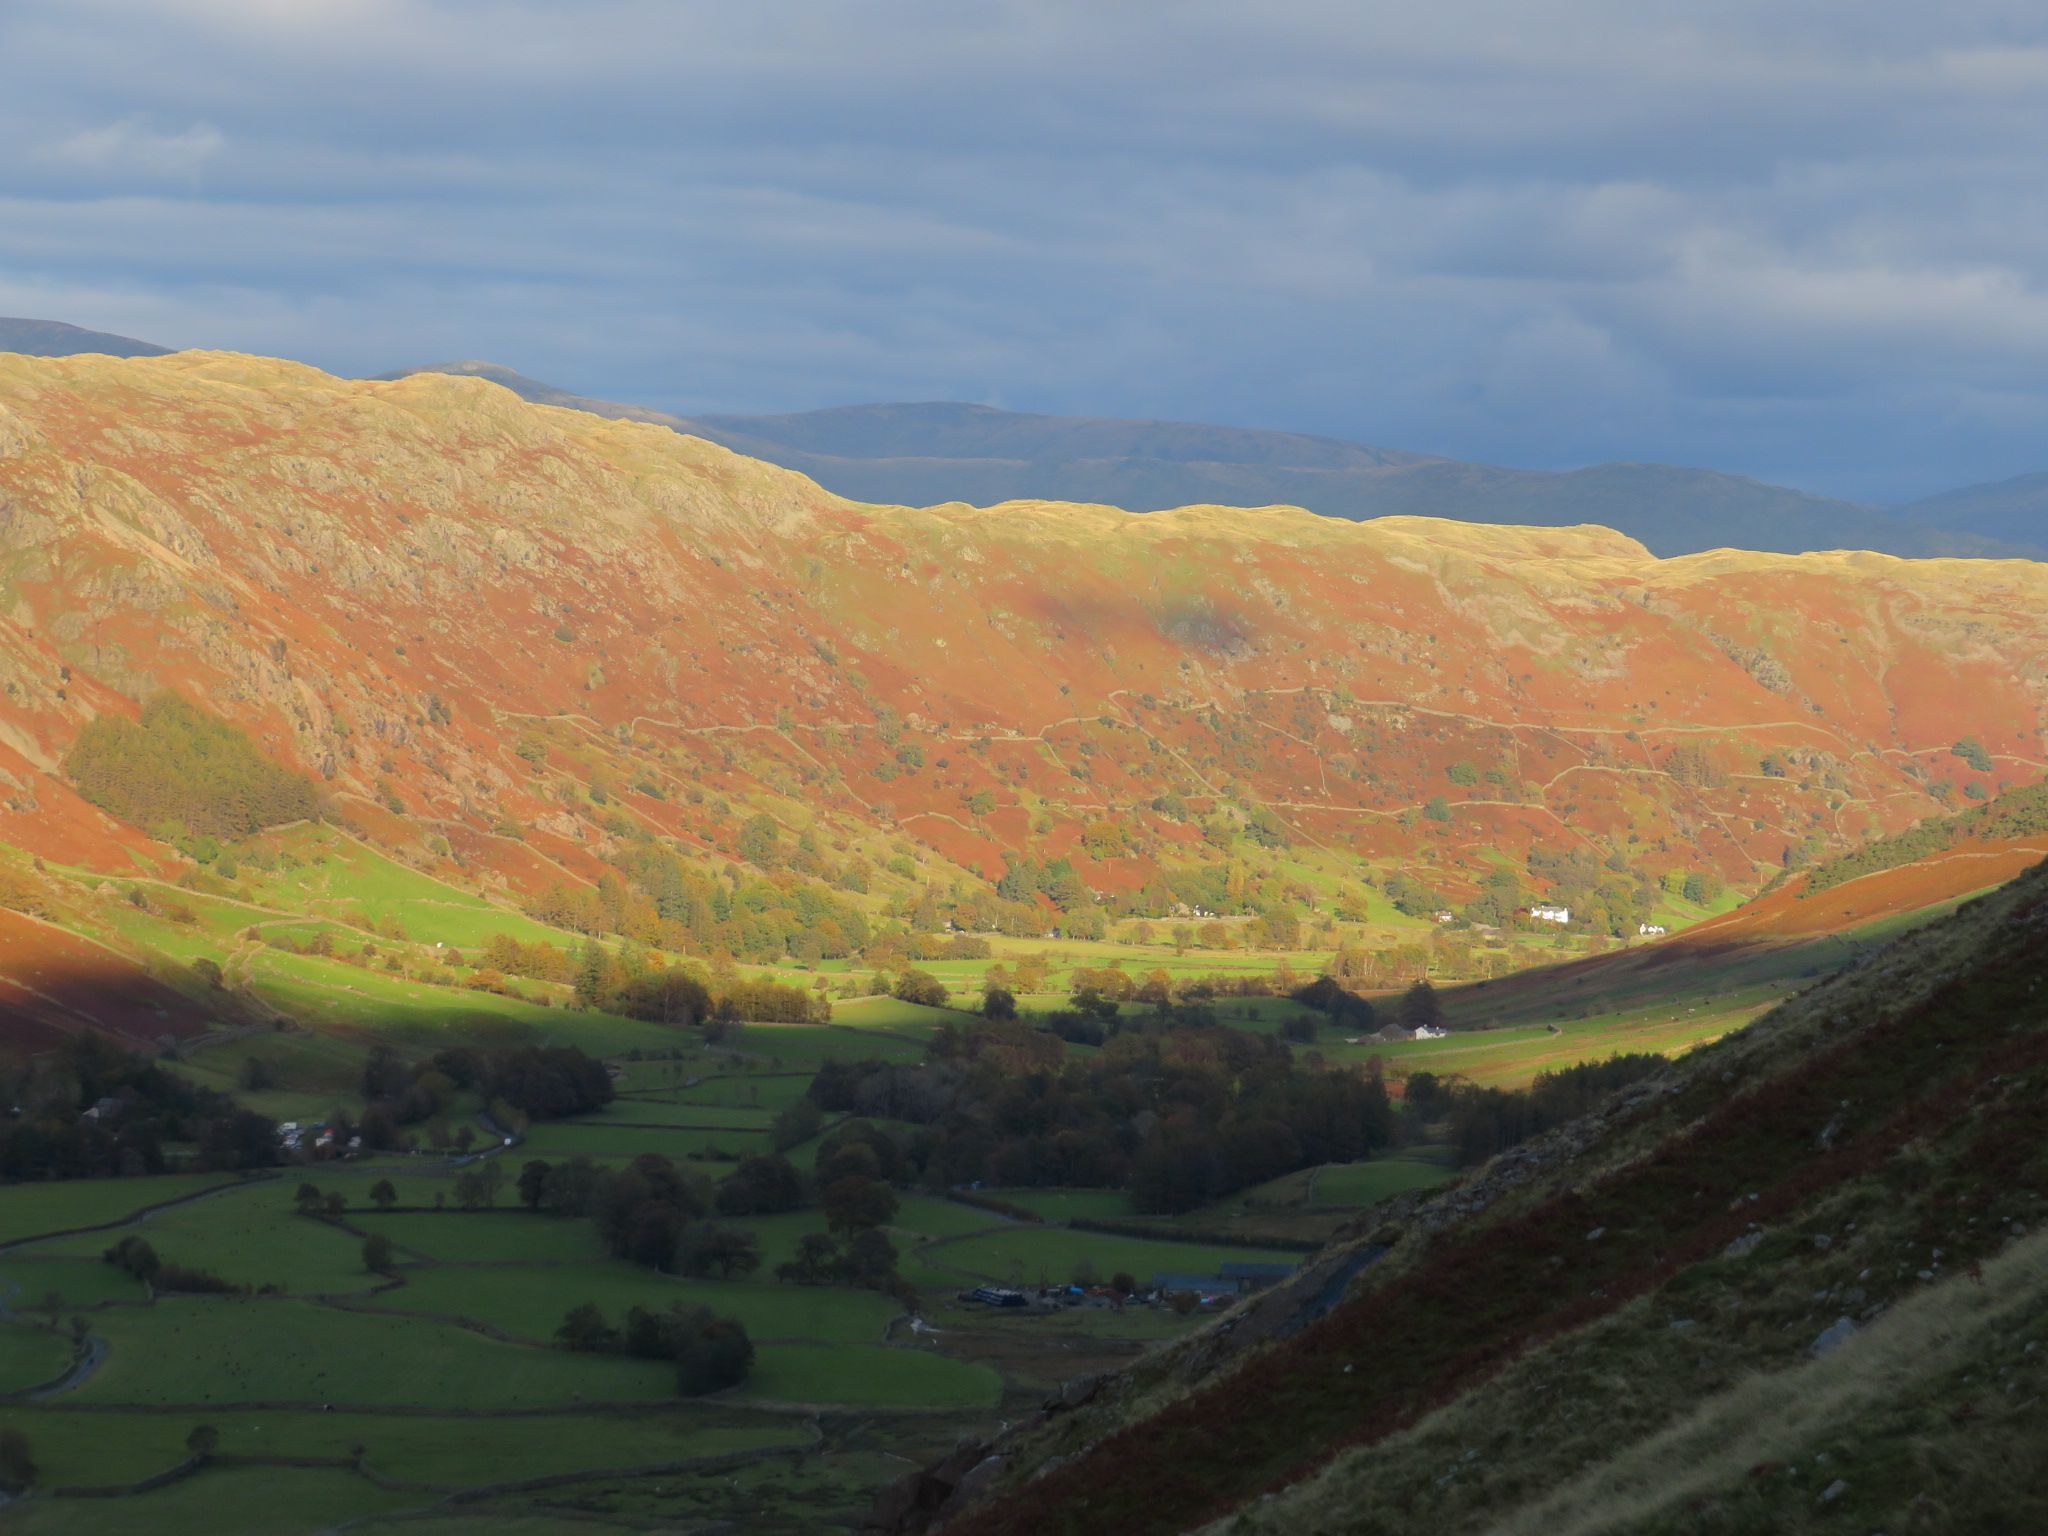 United Kingdom England Lake District, The Old Man of Coniston, Gt L valley from Pike of Blisco flank, October light, Walkopedia